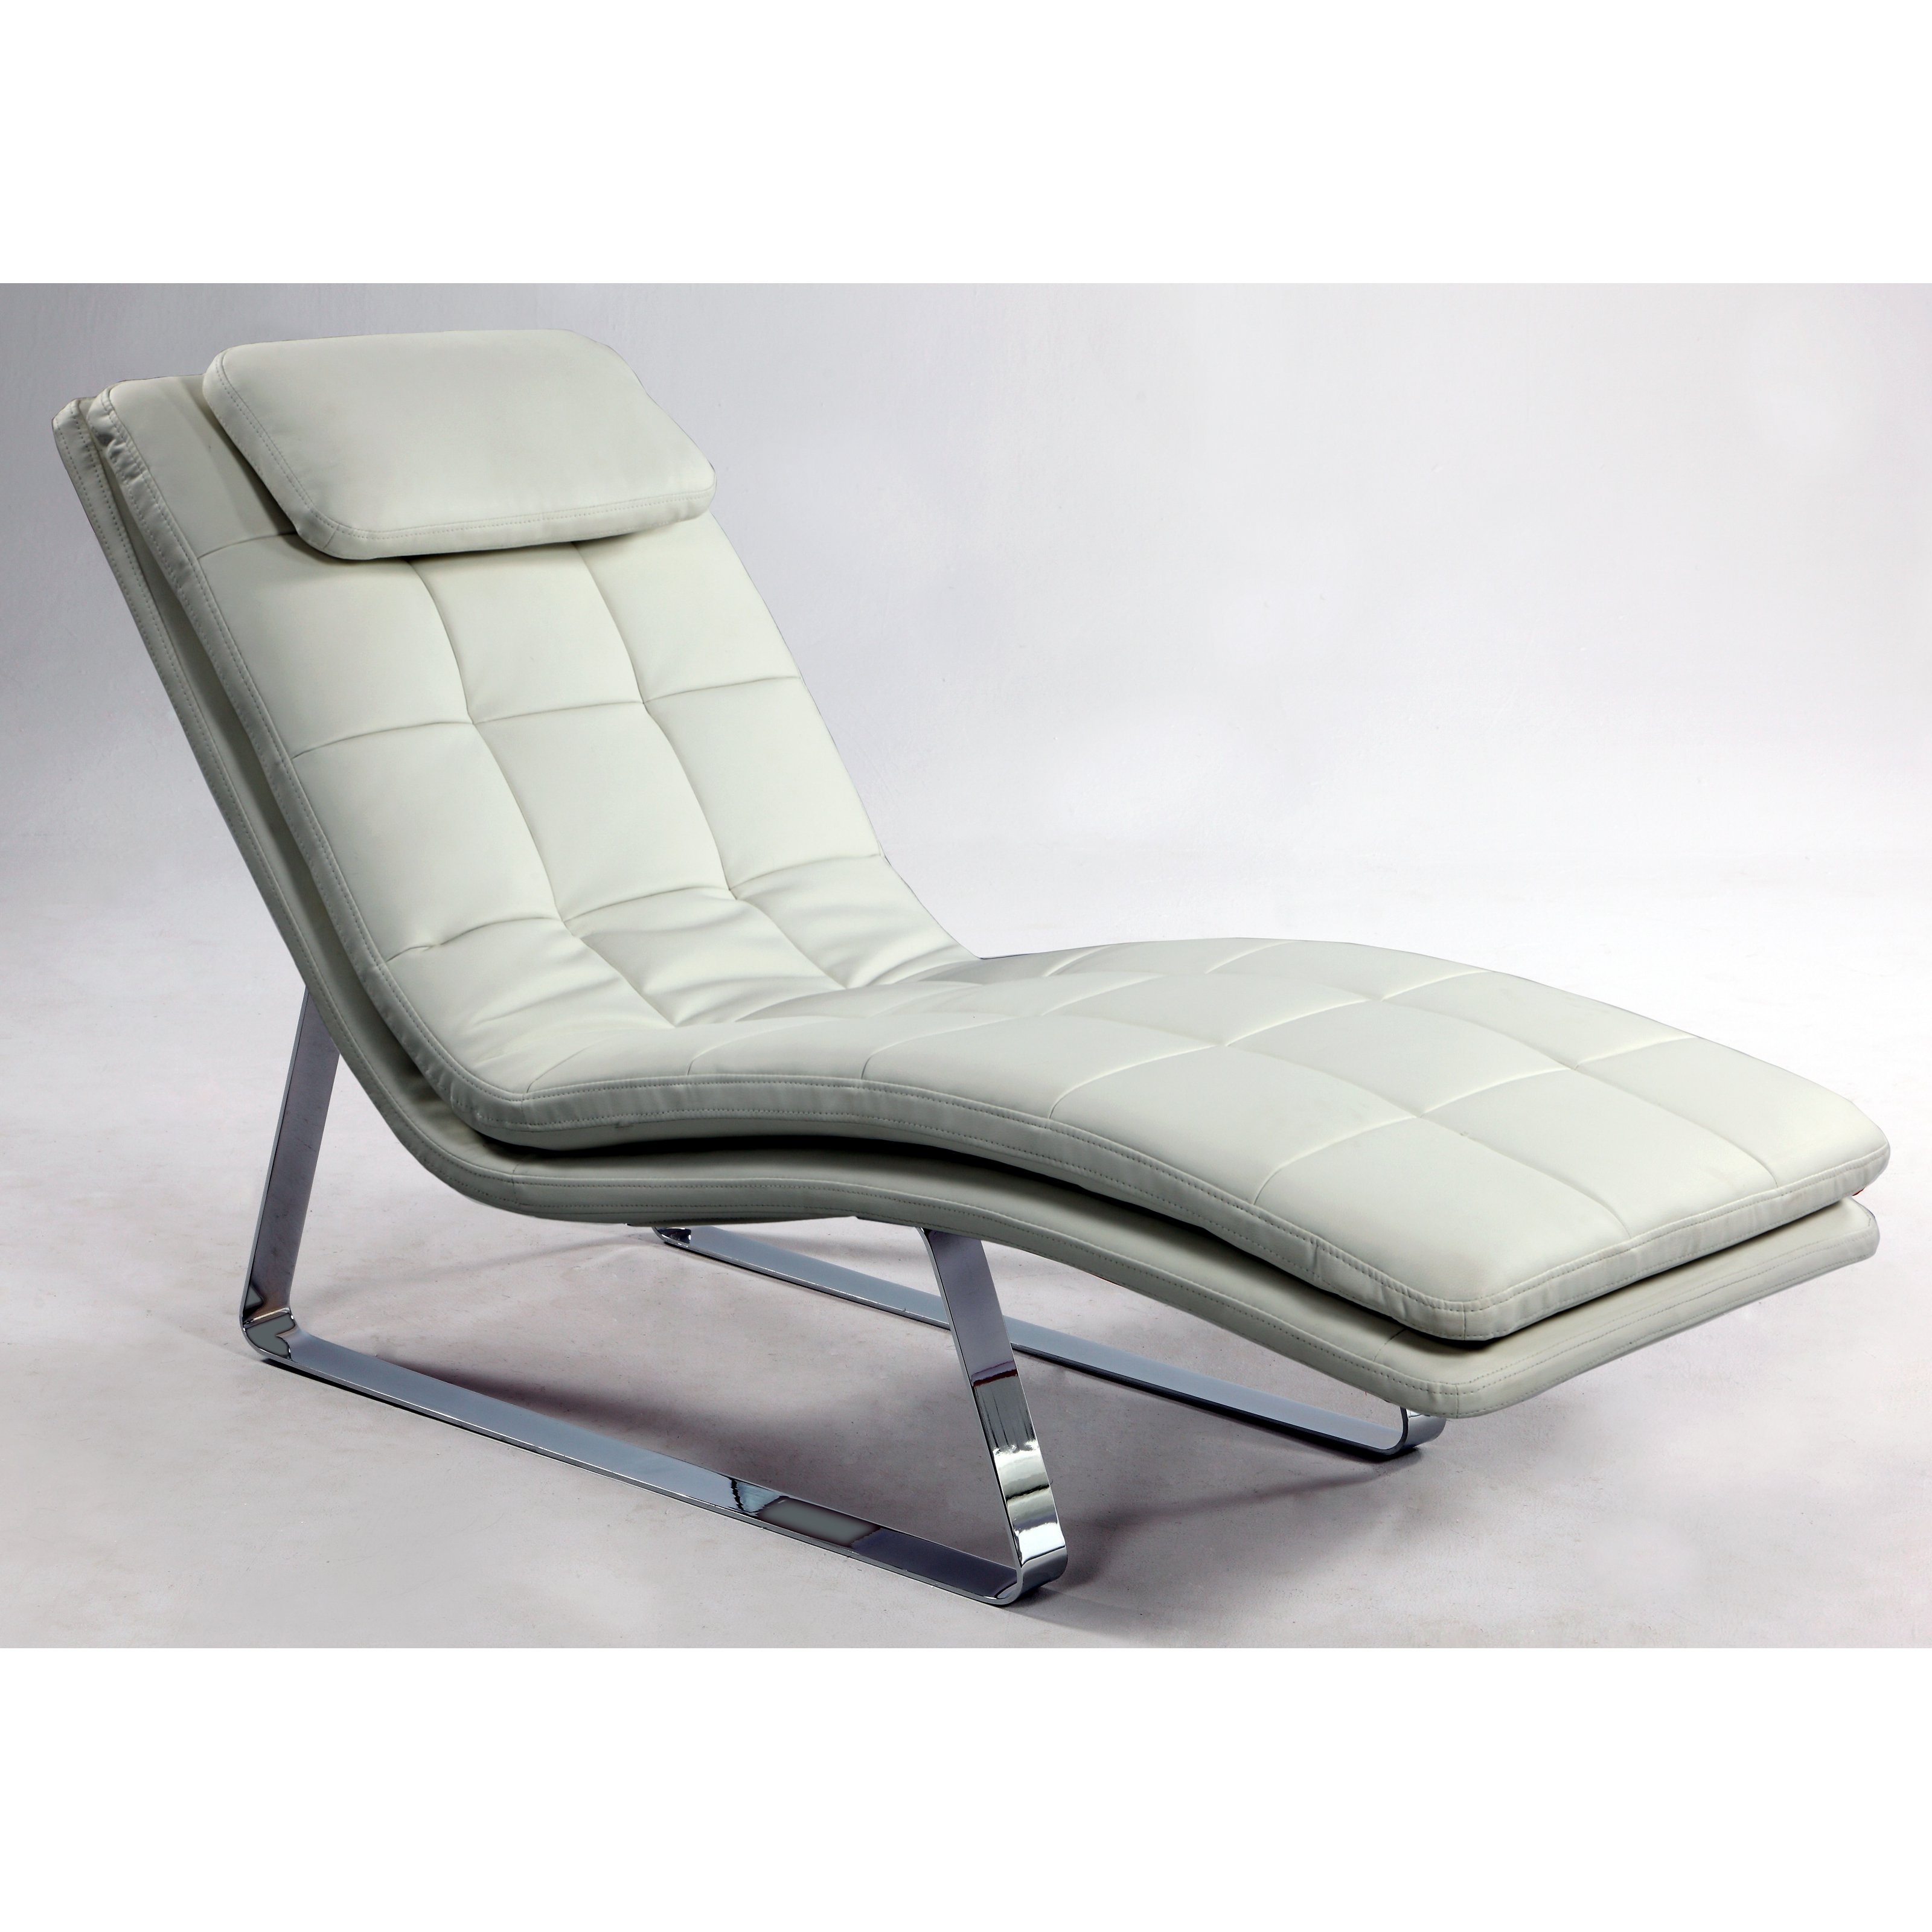 Chintaly Corvette Upholstered Chaise Lounge